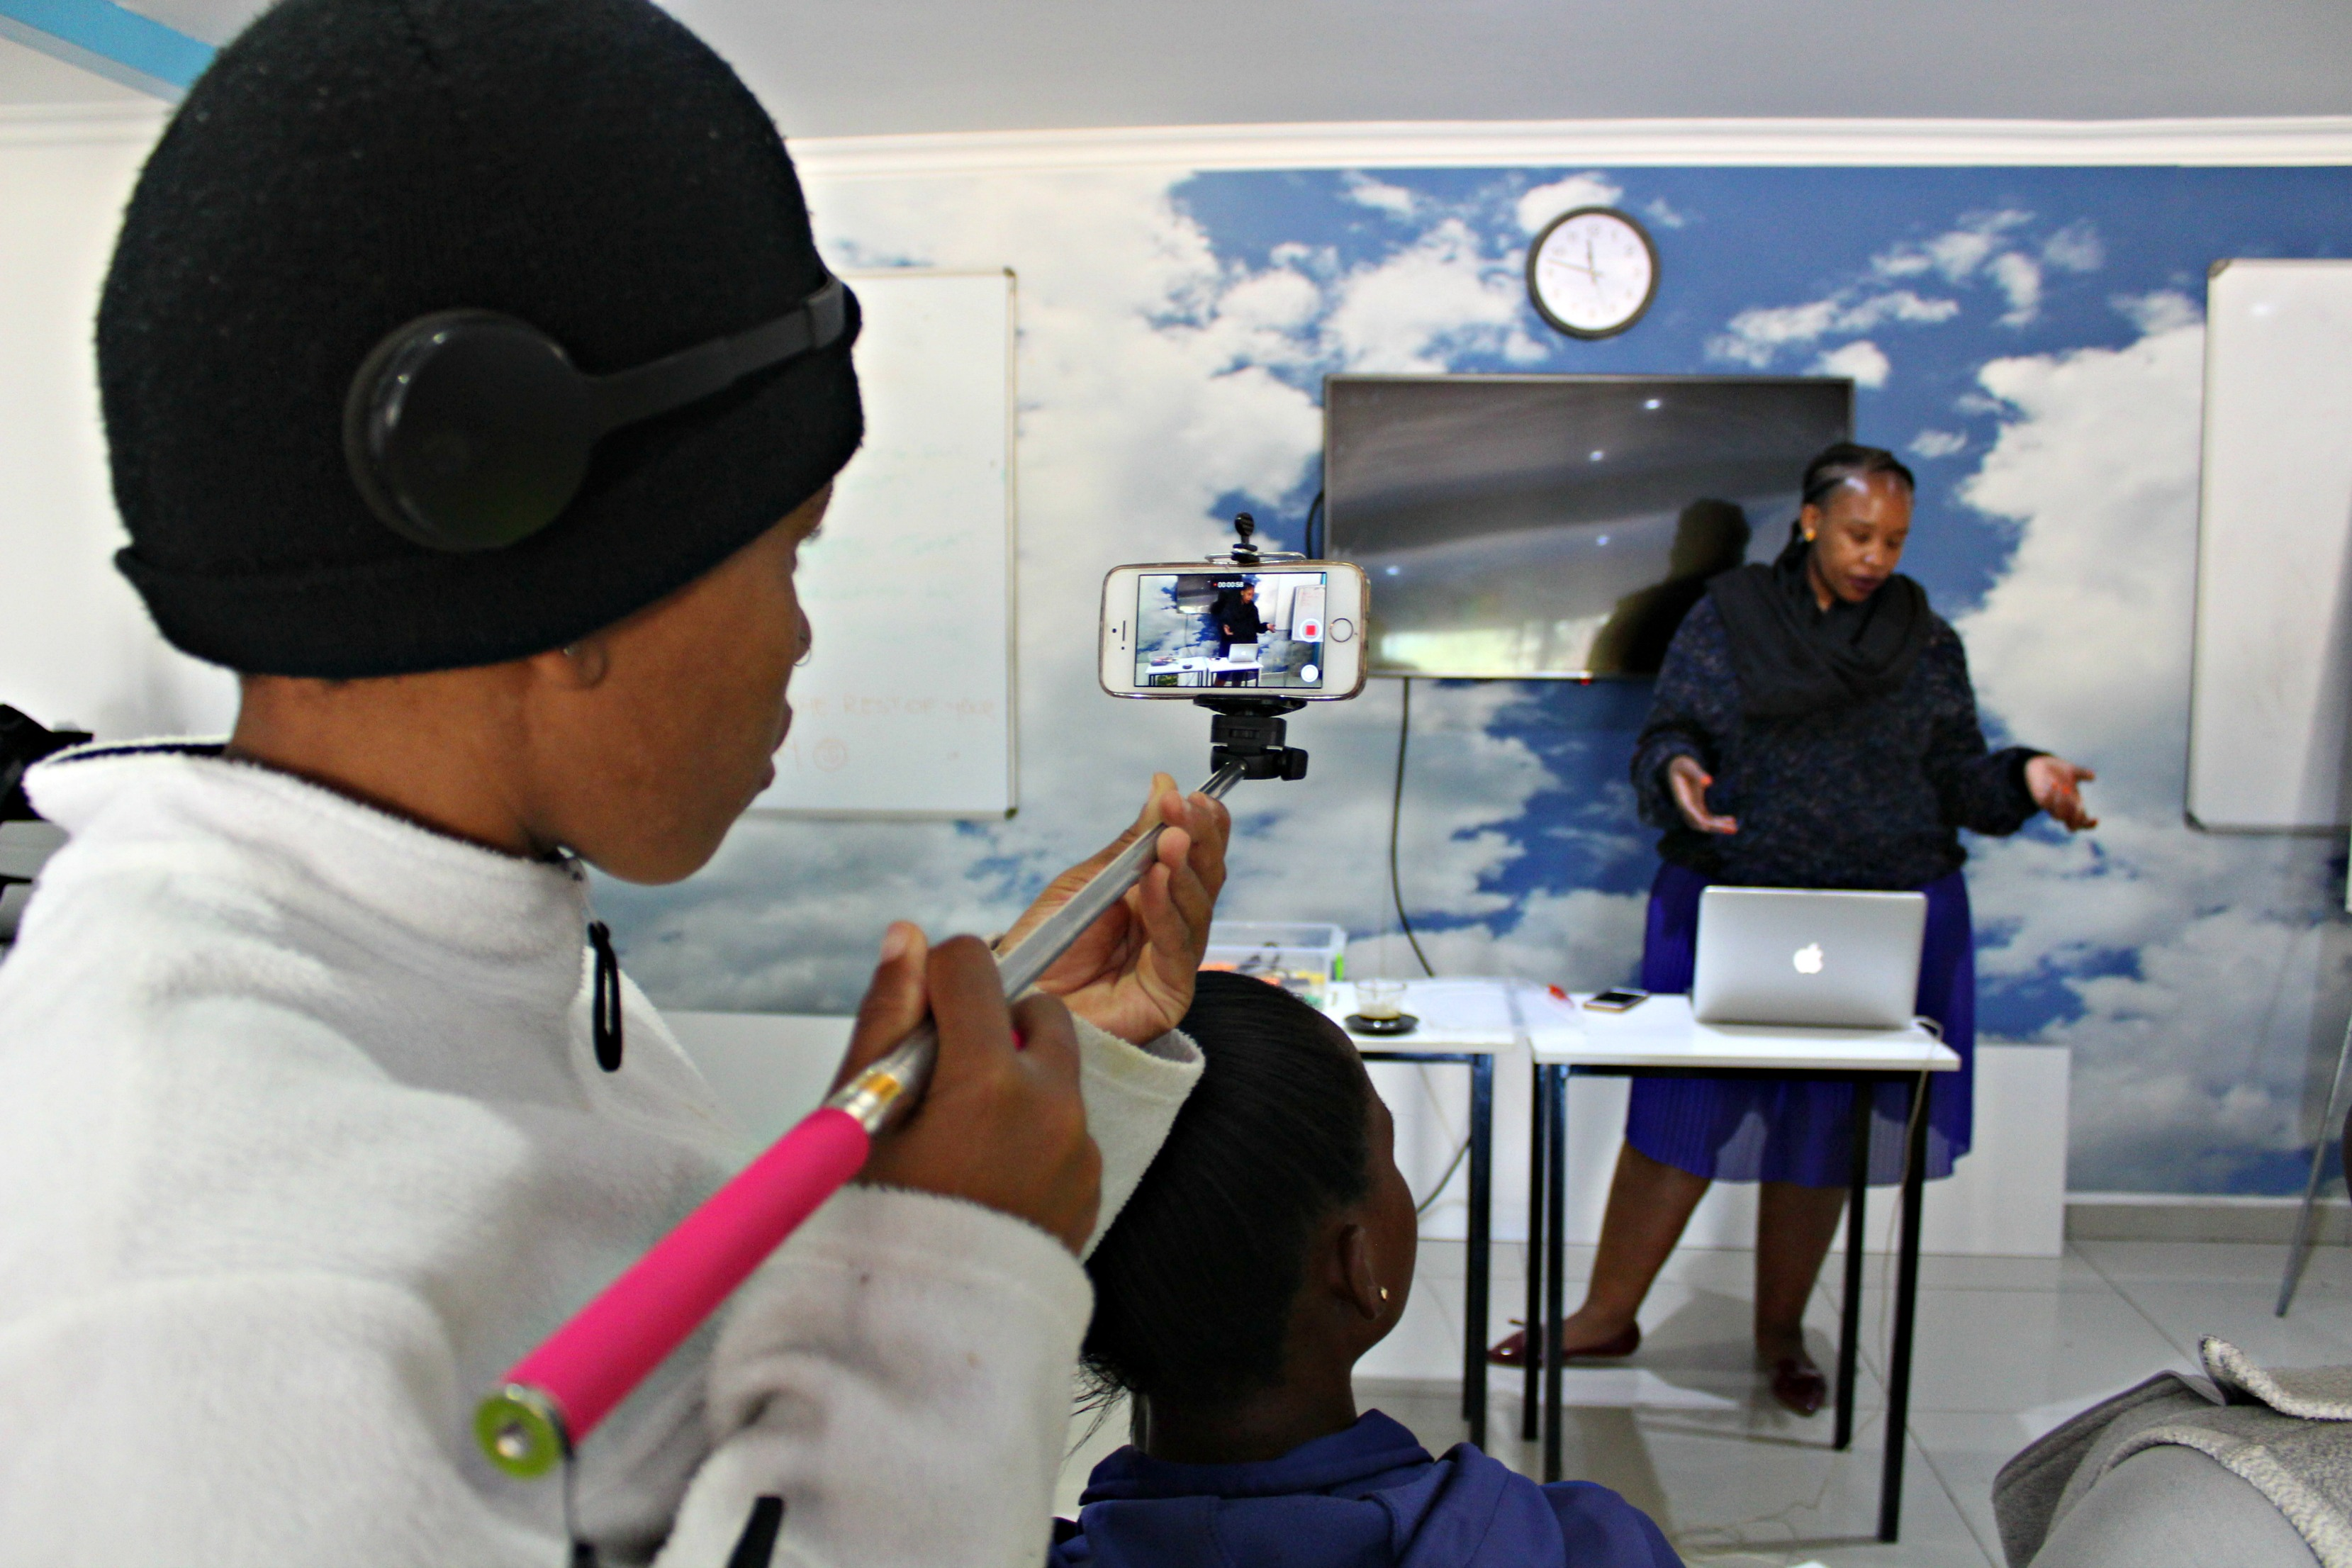 Thoriso Ngwatwane participates in Mobile Filmmaking inside eHUB Diepsloot, June 2018